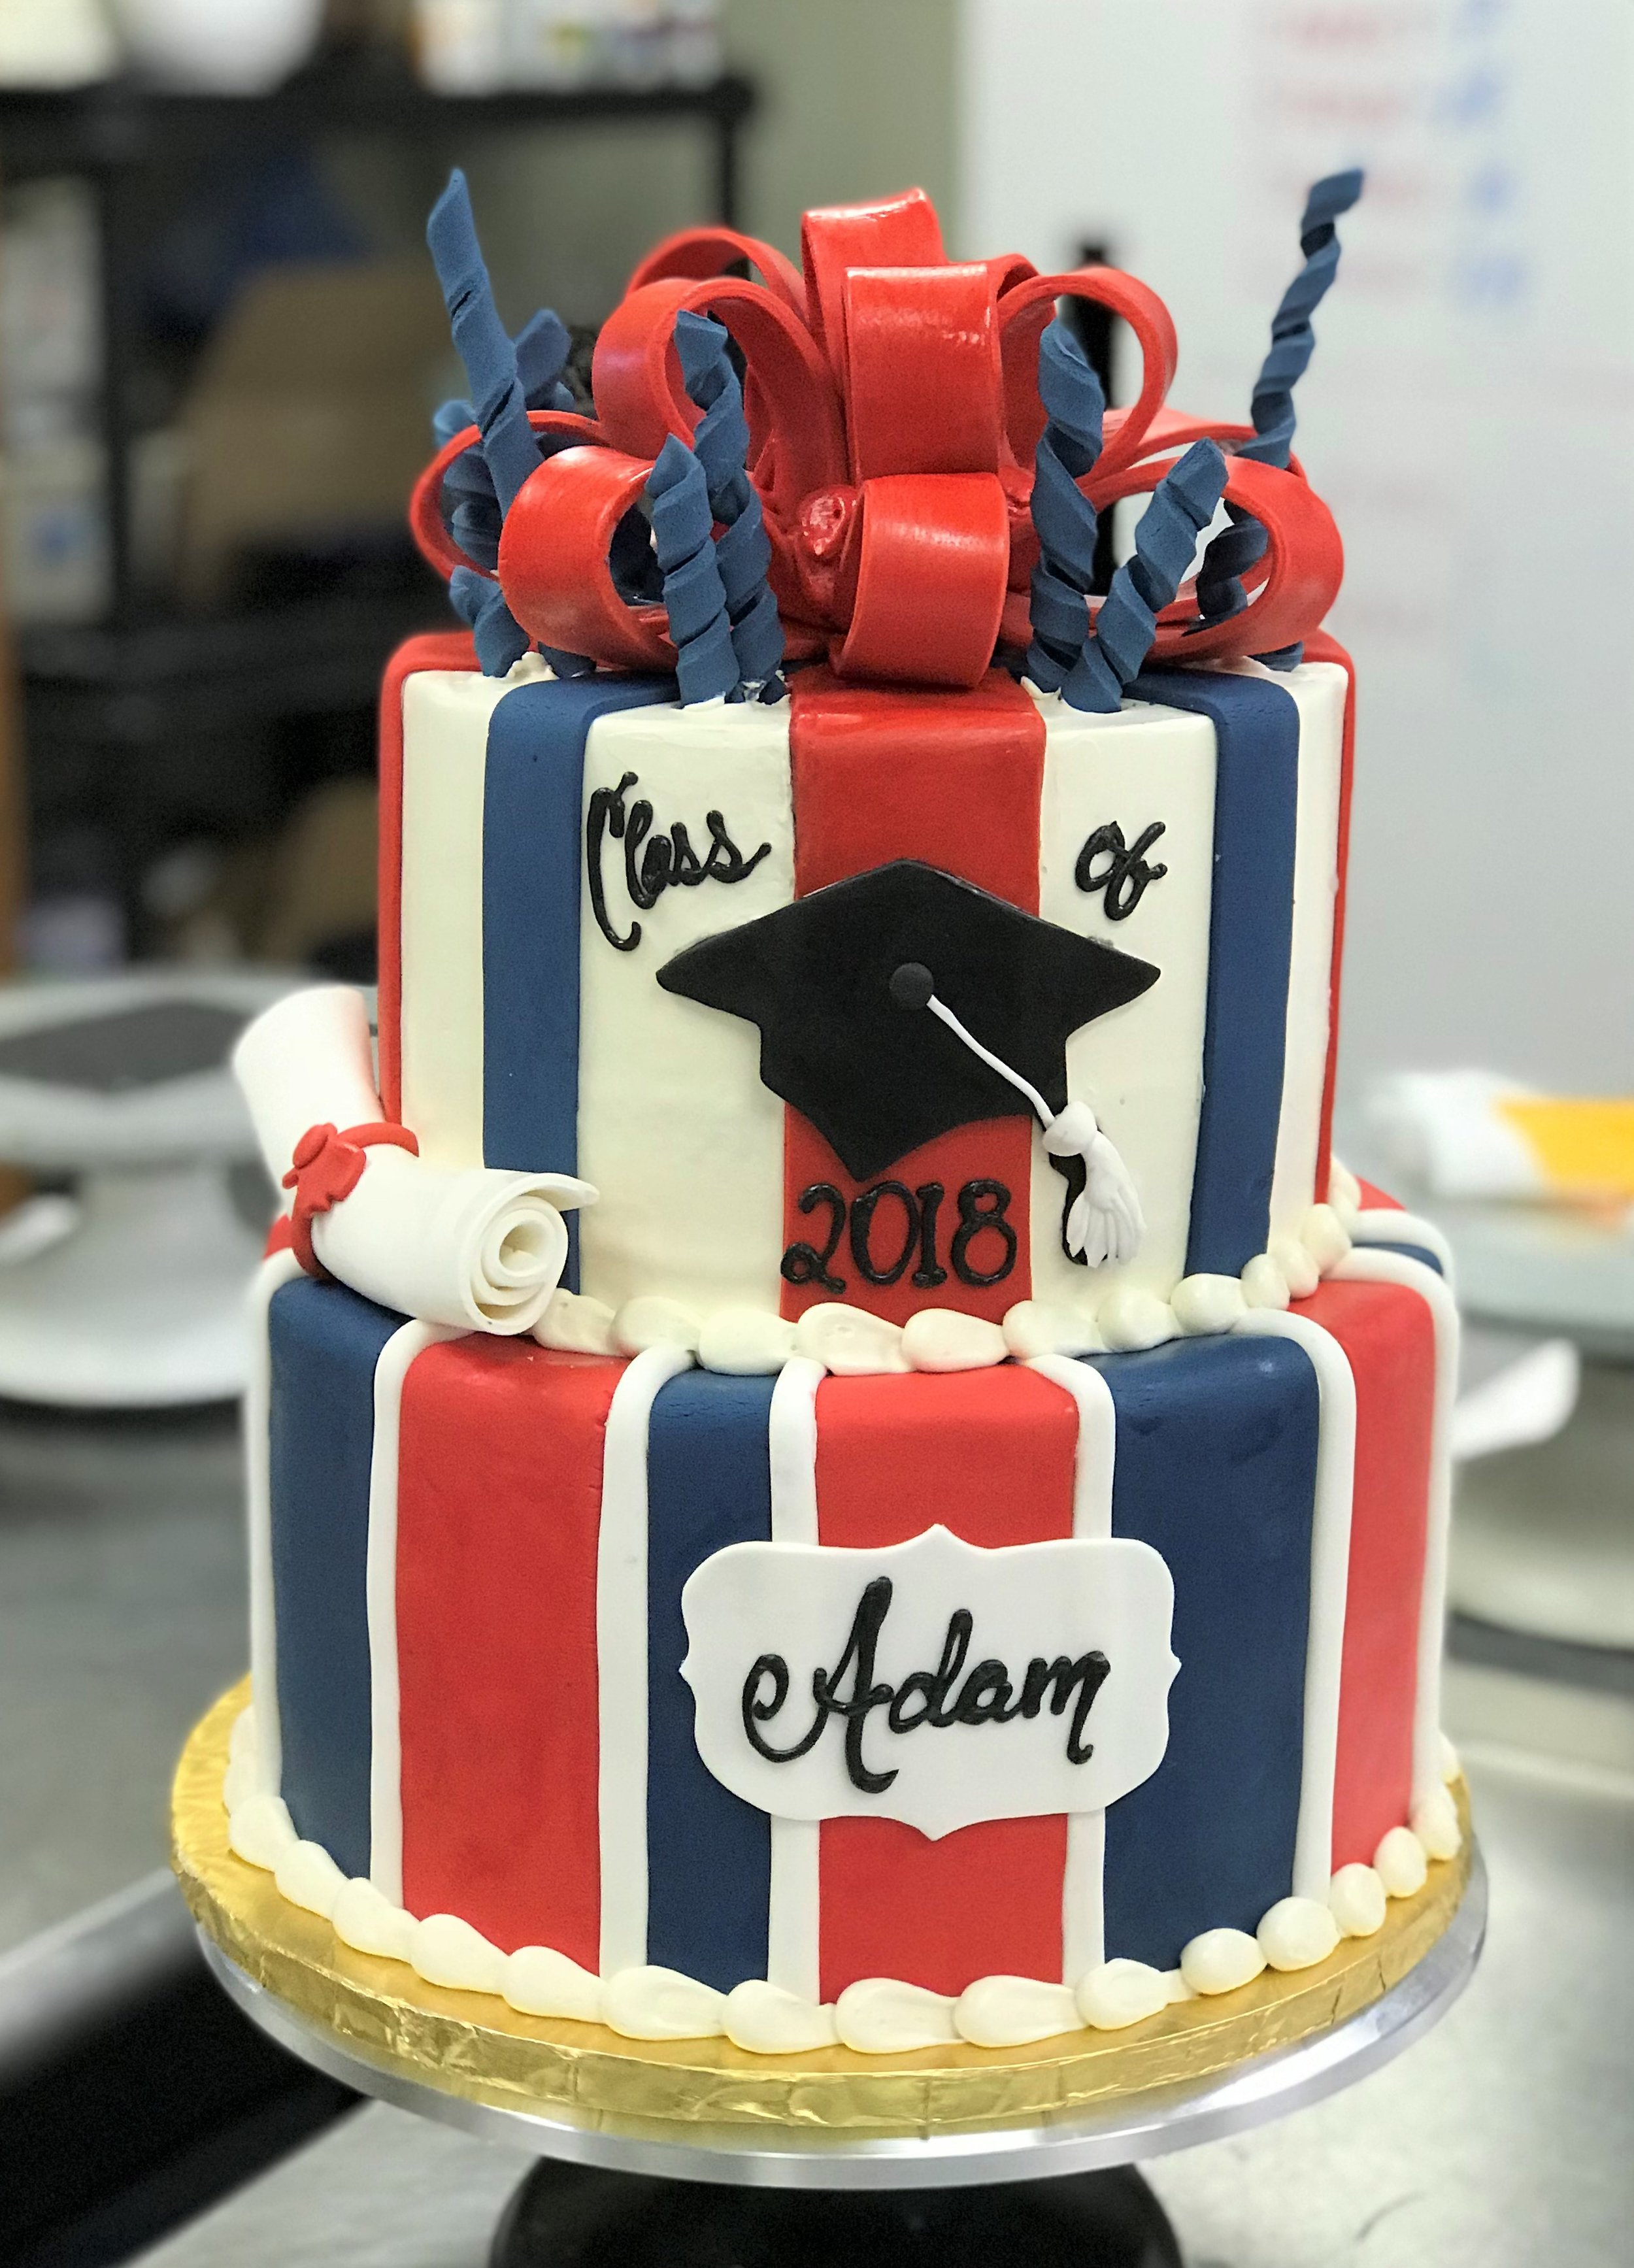 parkway grad cake red and blue.jpg